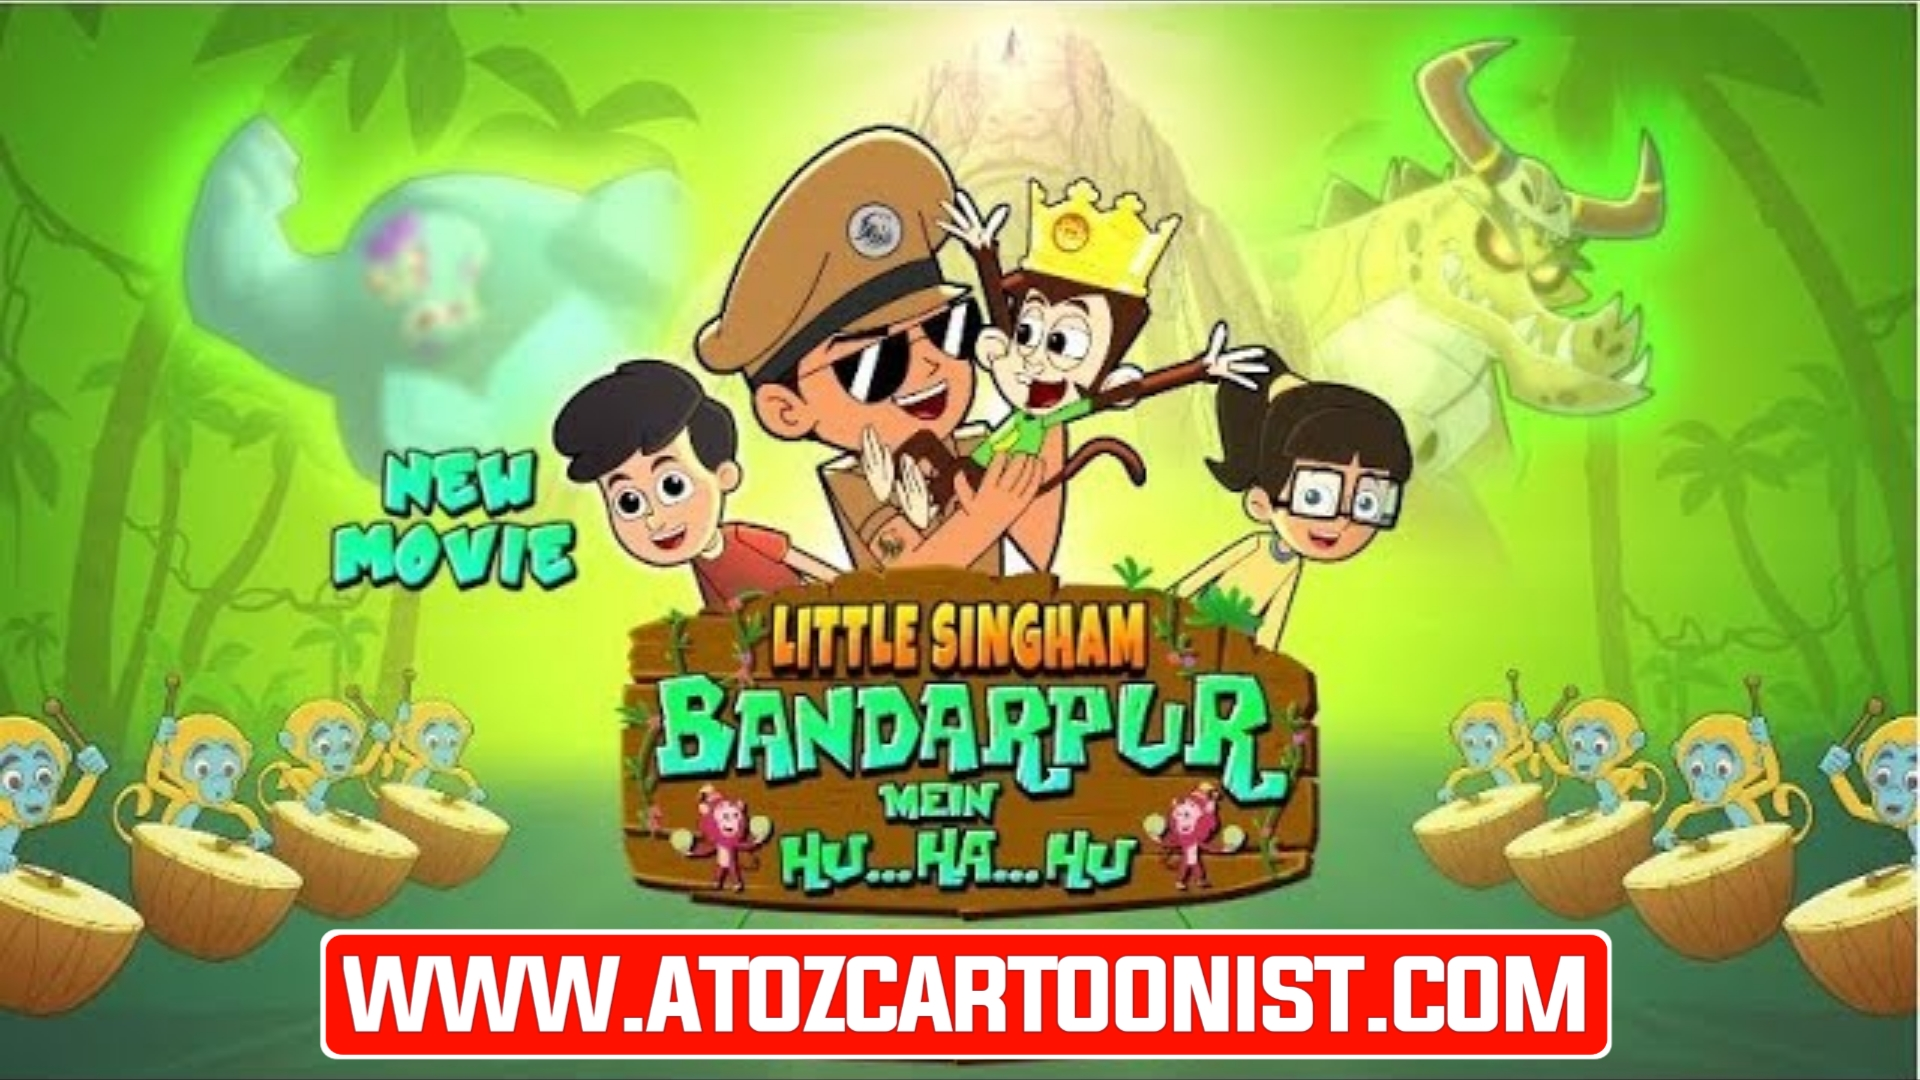 LITTLE SINGHAM : BANDARPUR ME HU HA HU FULL MOVIE IN HINDI DOWNLOAD (1080P FULL HD)